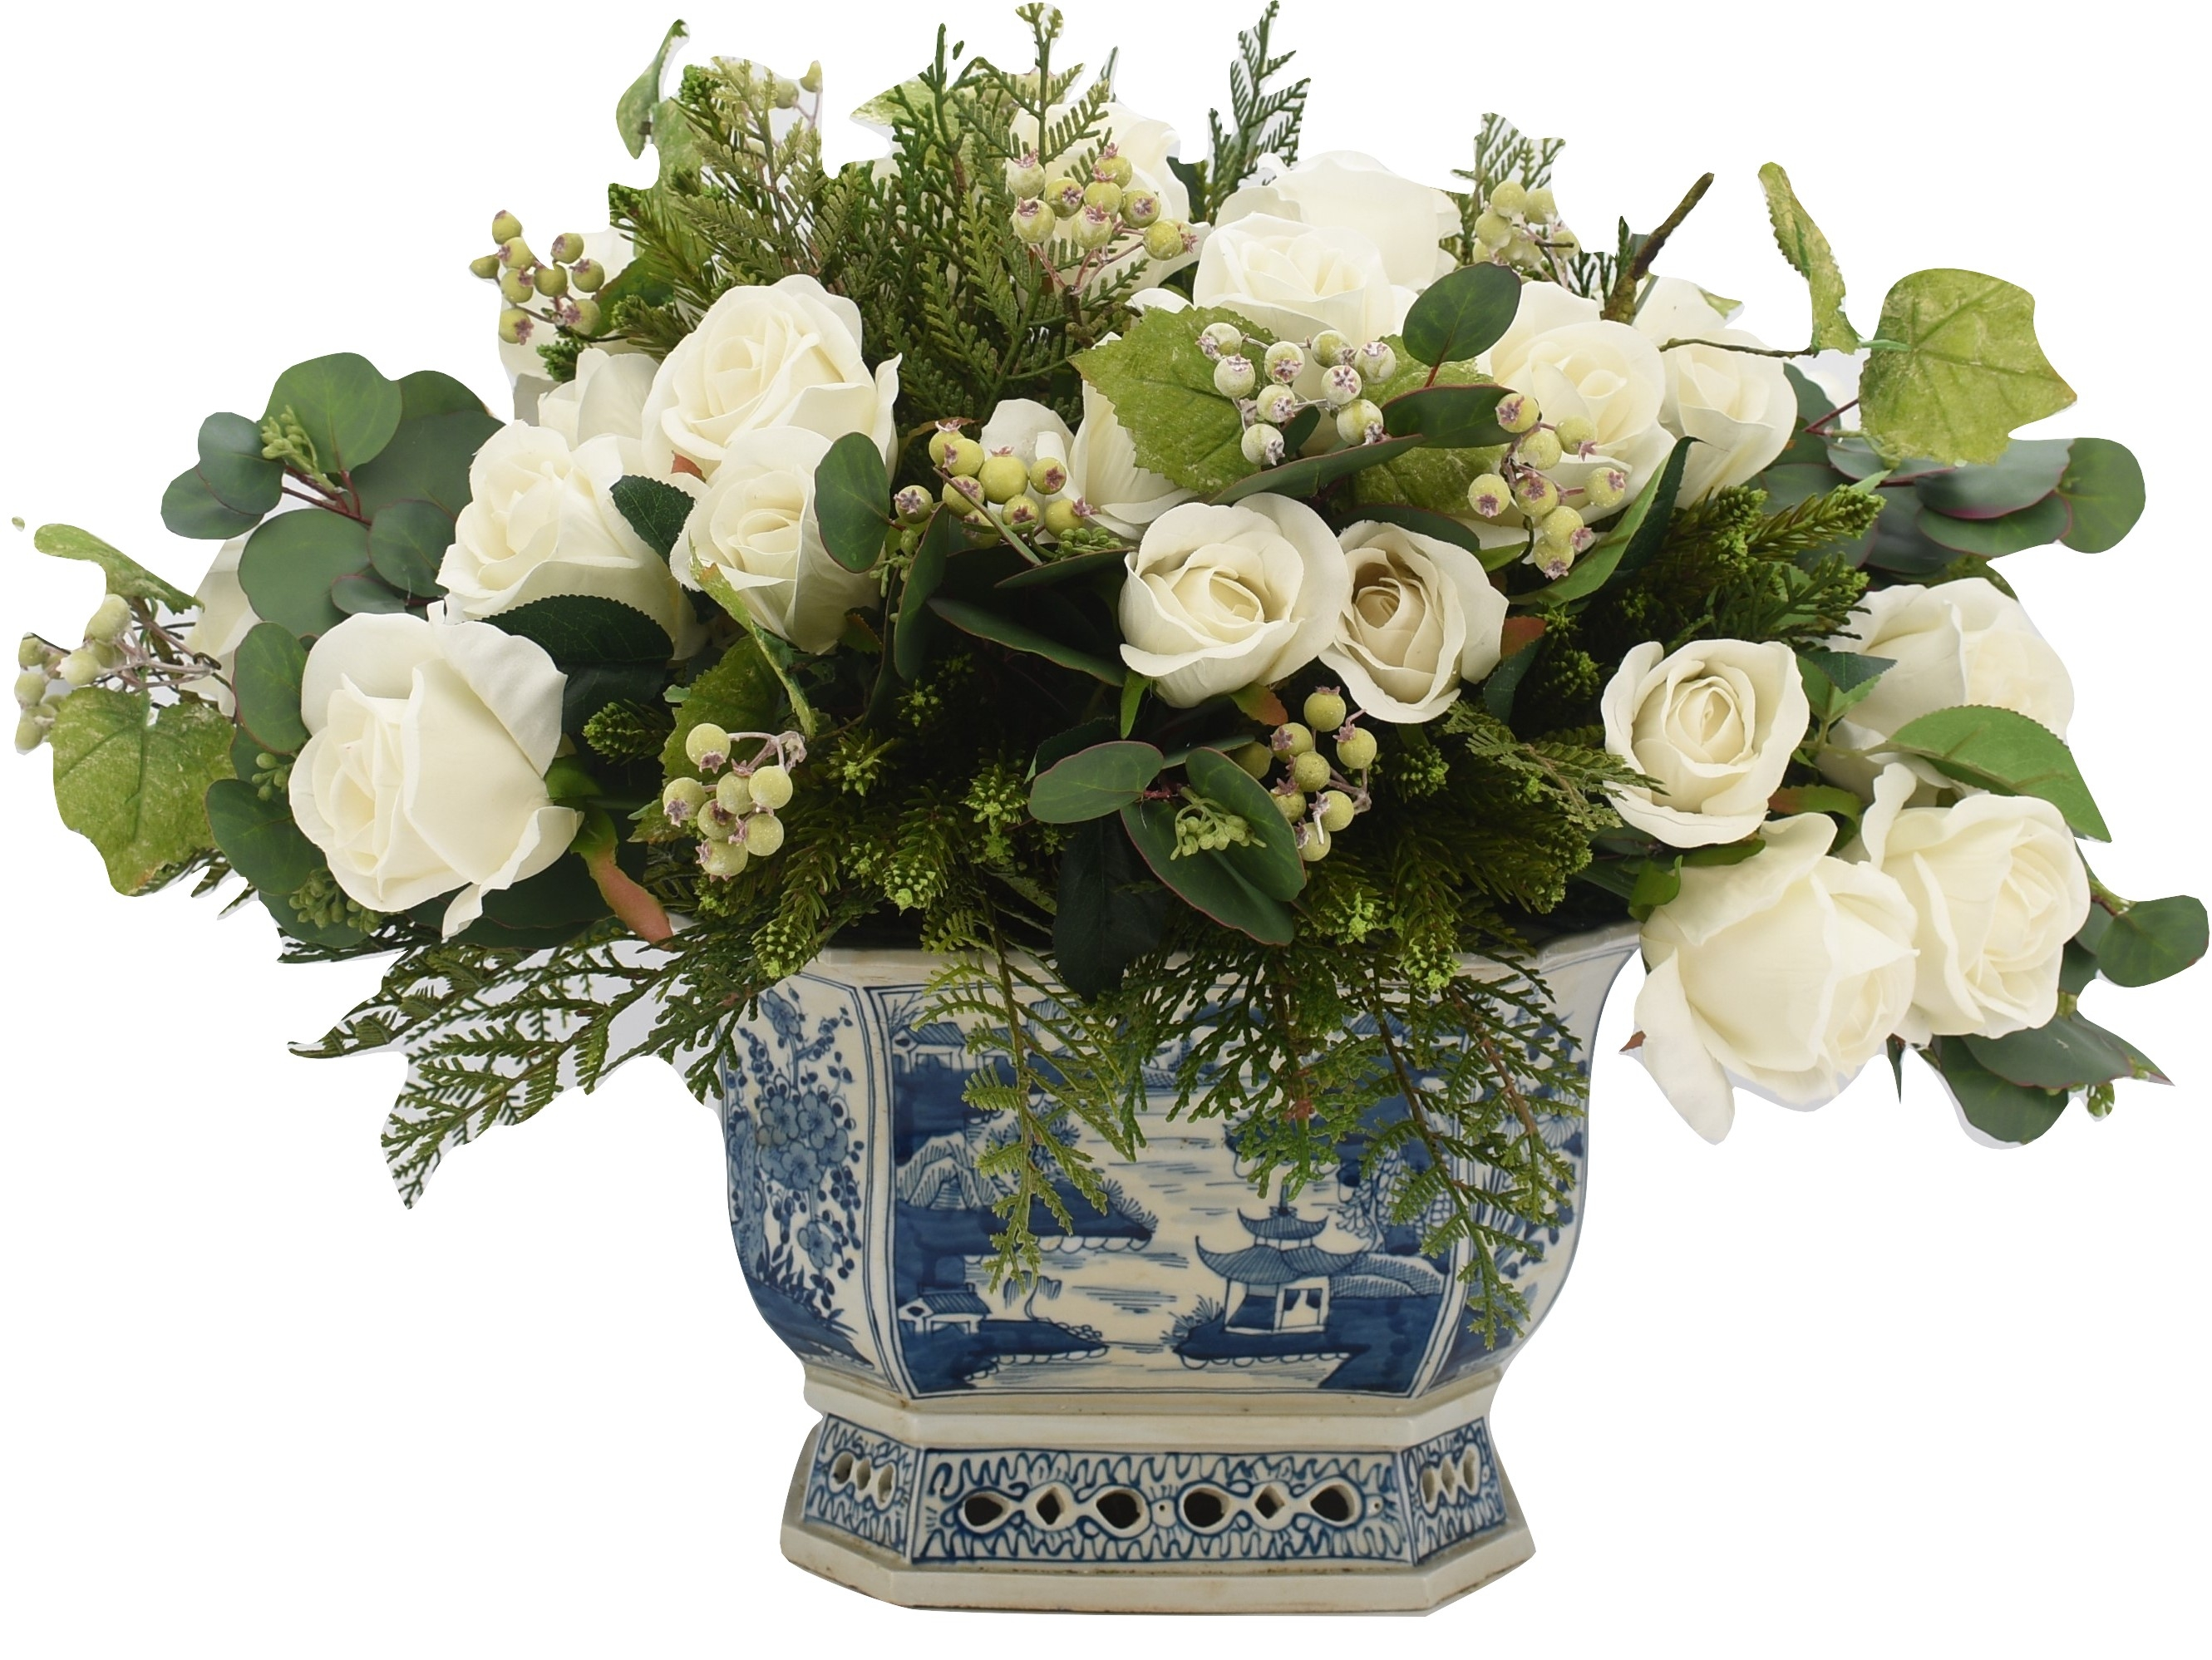 Stunning holiday greenery and white rose arrangement